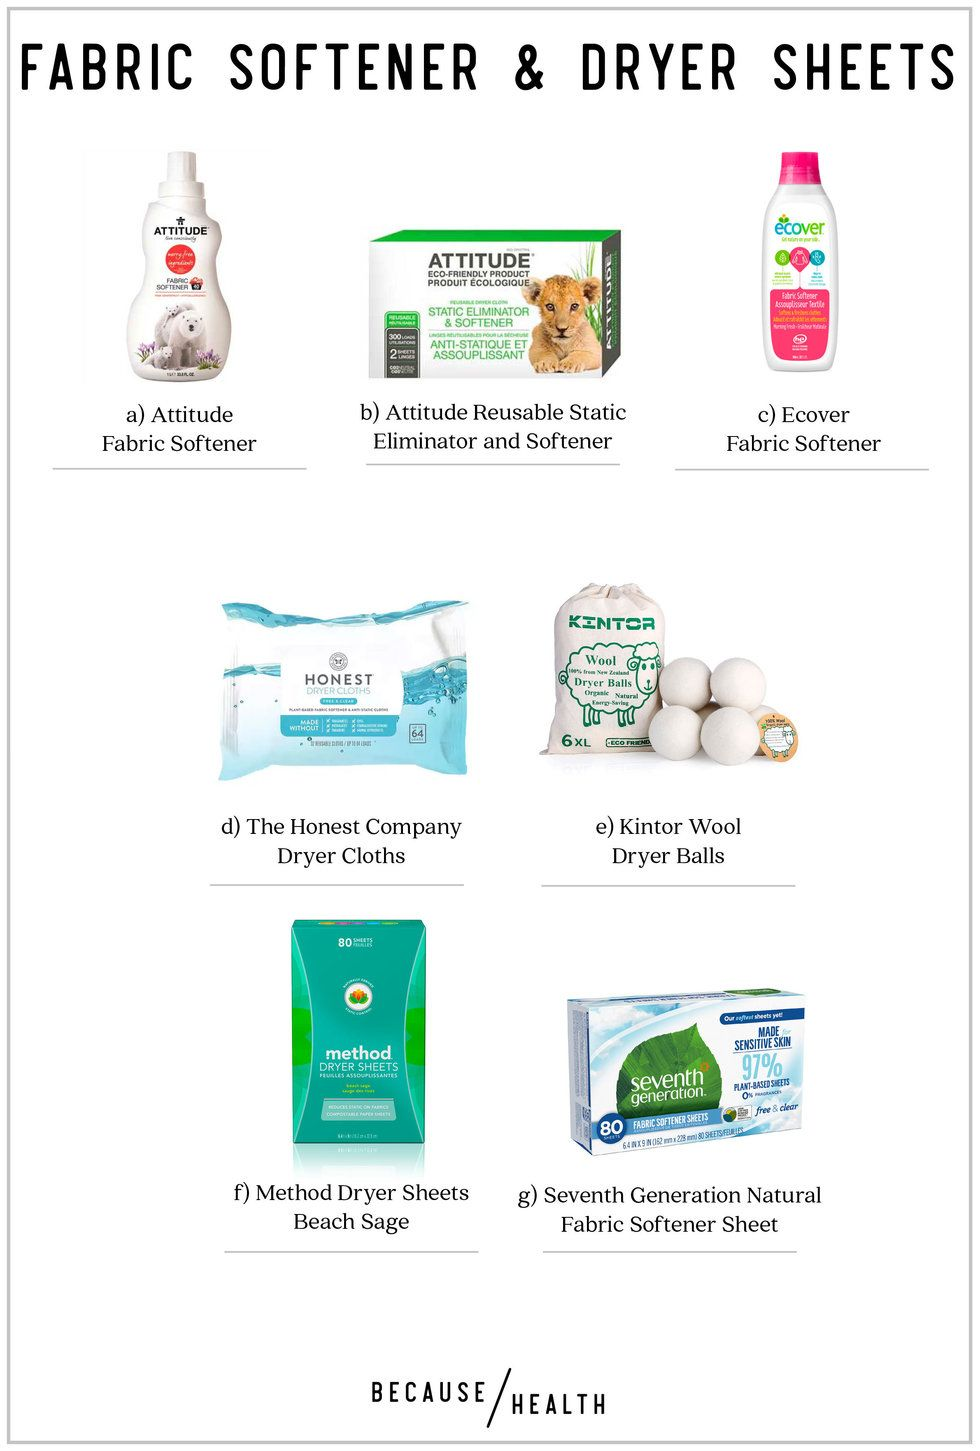 75cc4c14d36 a) Attitude Fabric Softener b) Attitude Reusable Static Eliminator and  Softener c) Ecover Fabric Softener d) The Honest Company Dryer Cloths e)  Kintor Wool ...